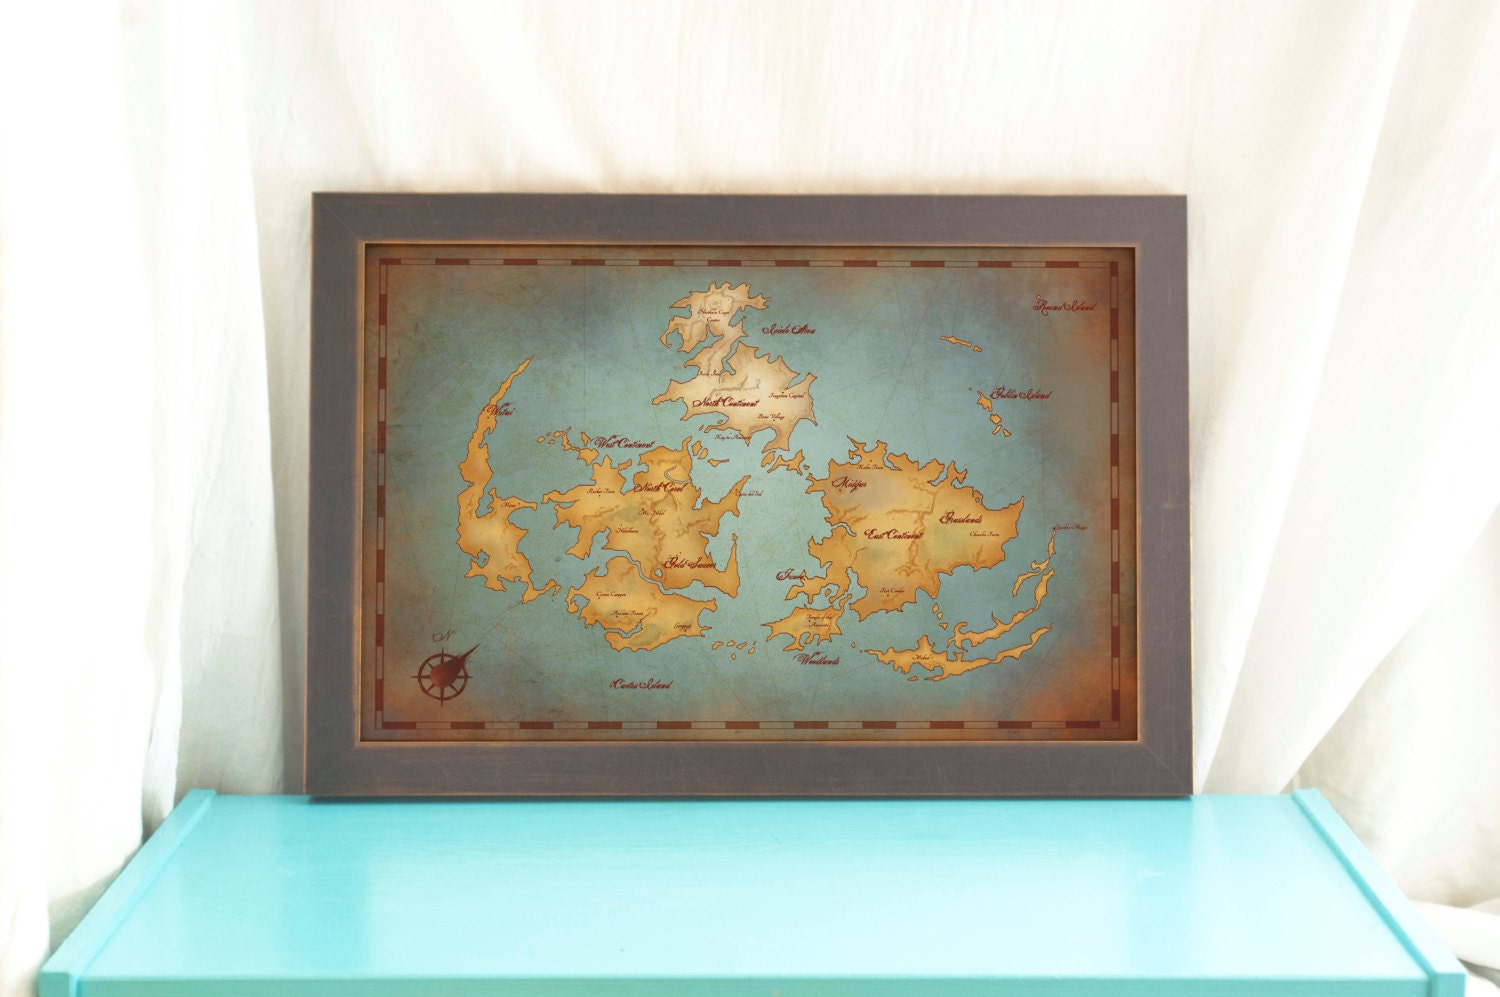 Final fantasy vii world map vintage style art print zoom gumiabroncs Choice Image